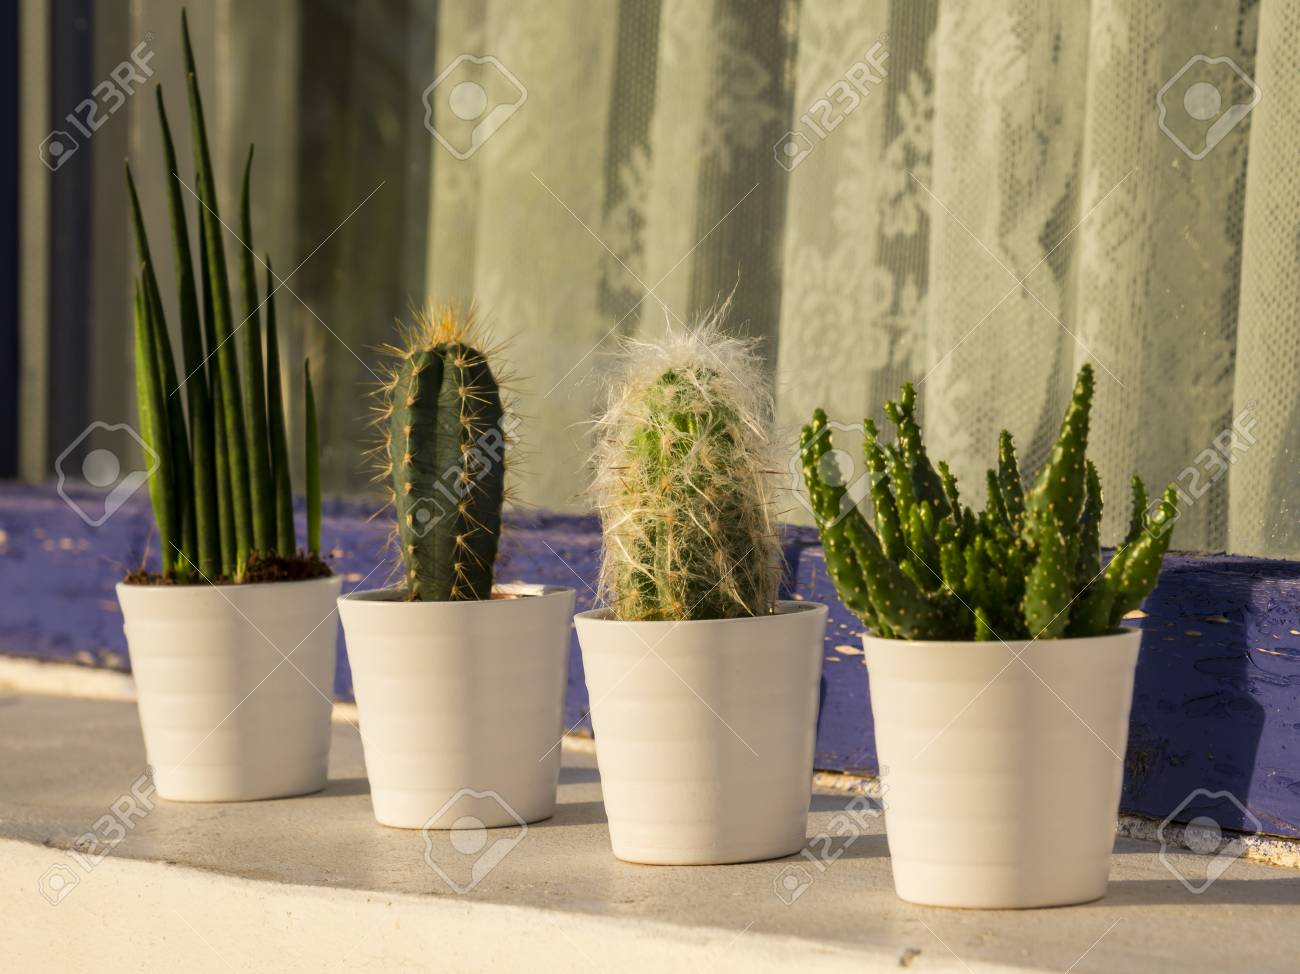 Cacti And Succulents In The Small White Flower Pots Outdoor Stock